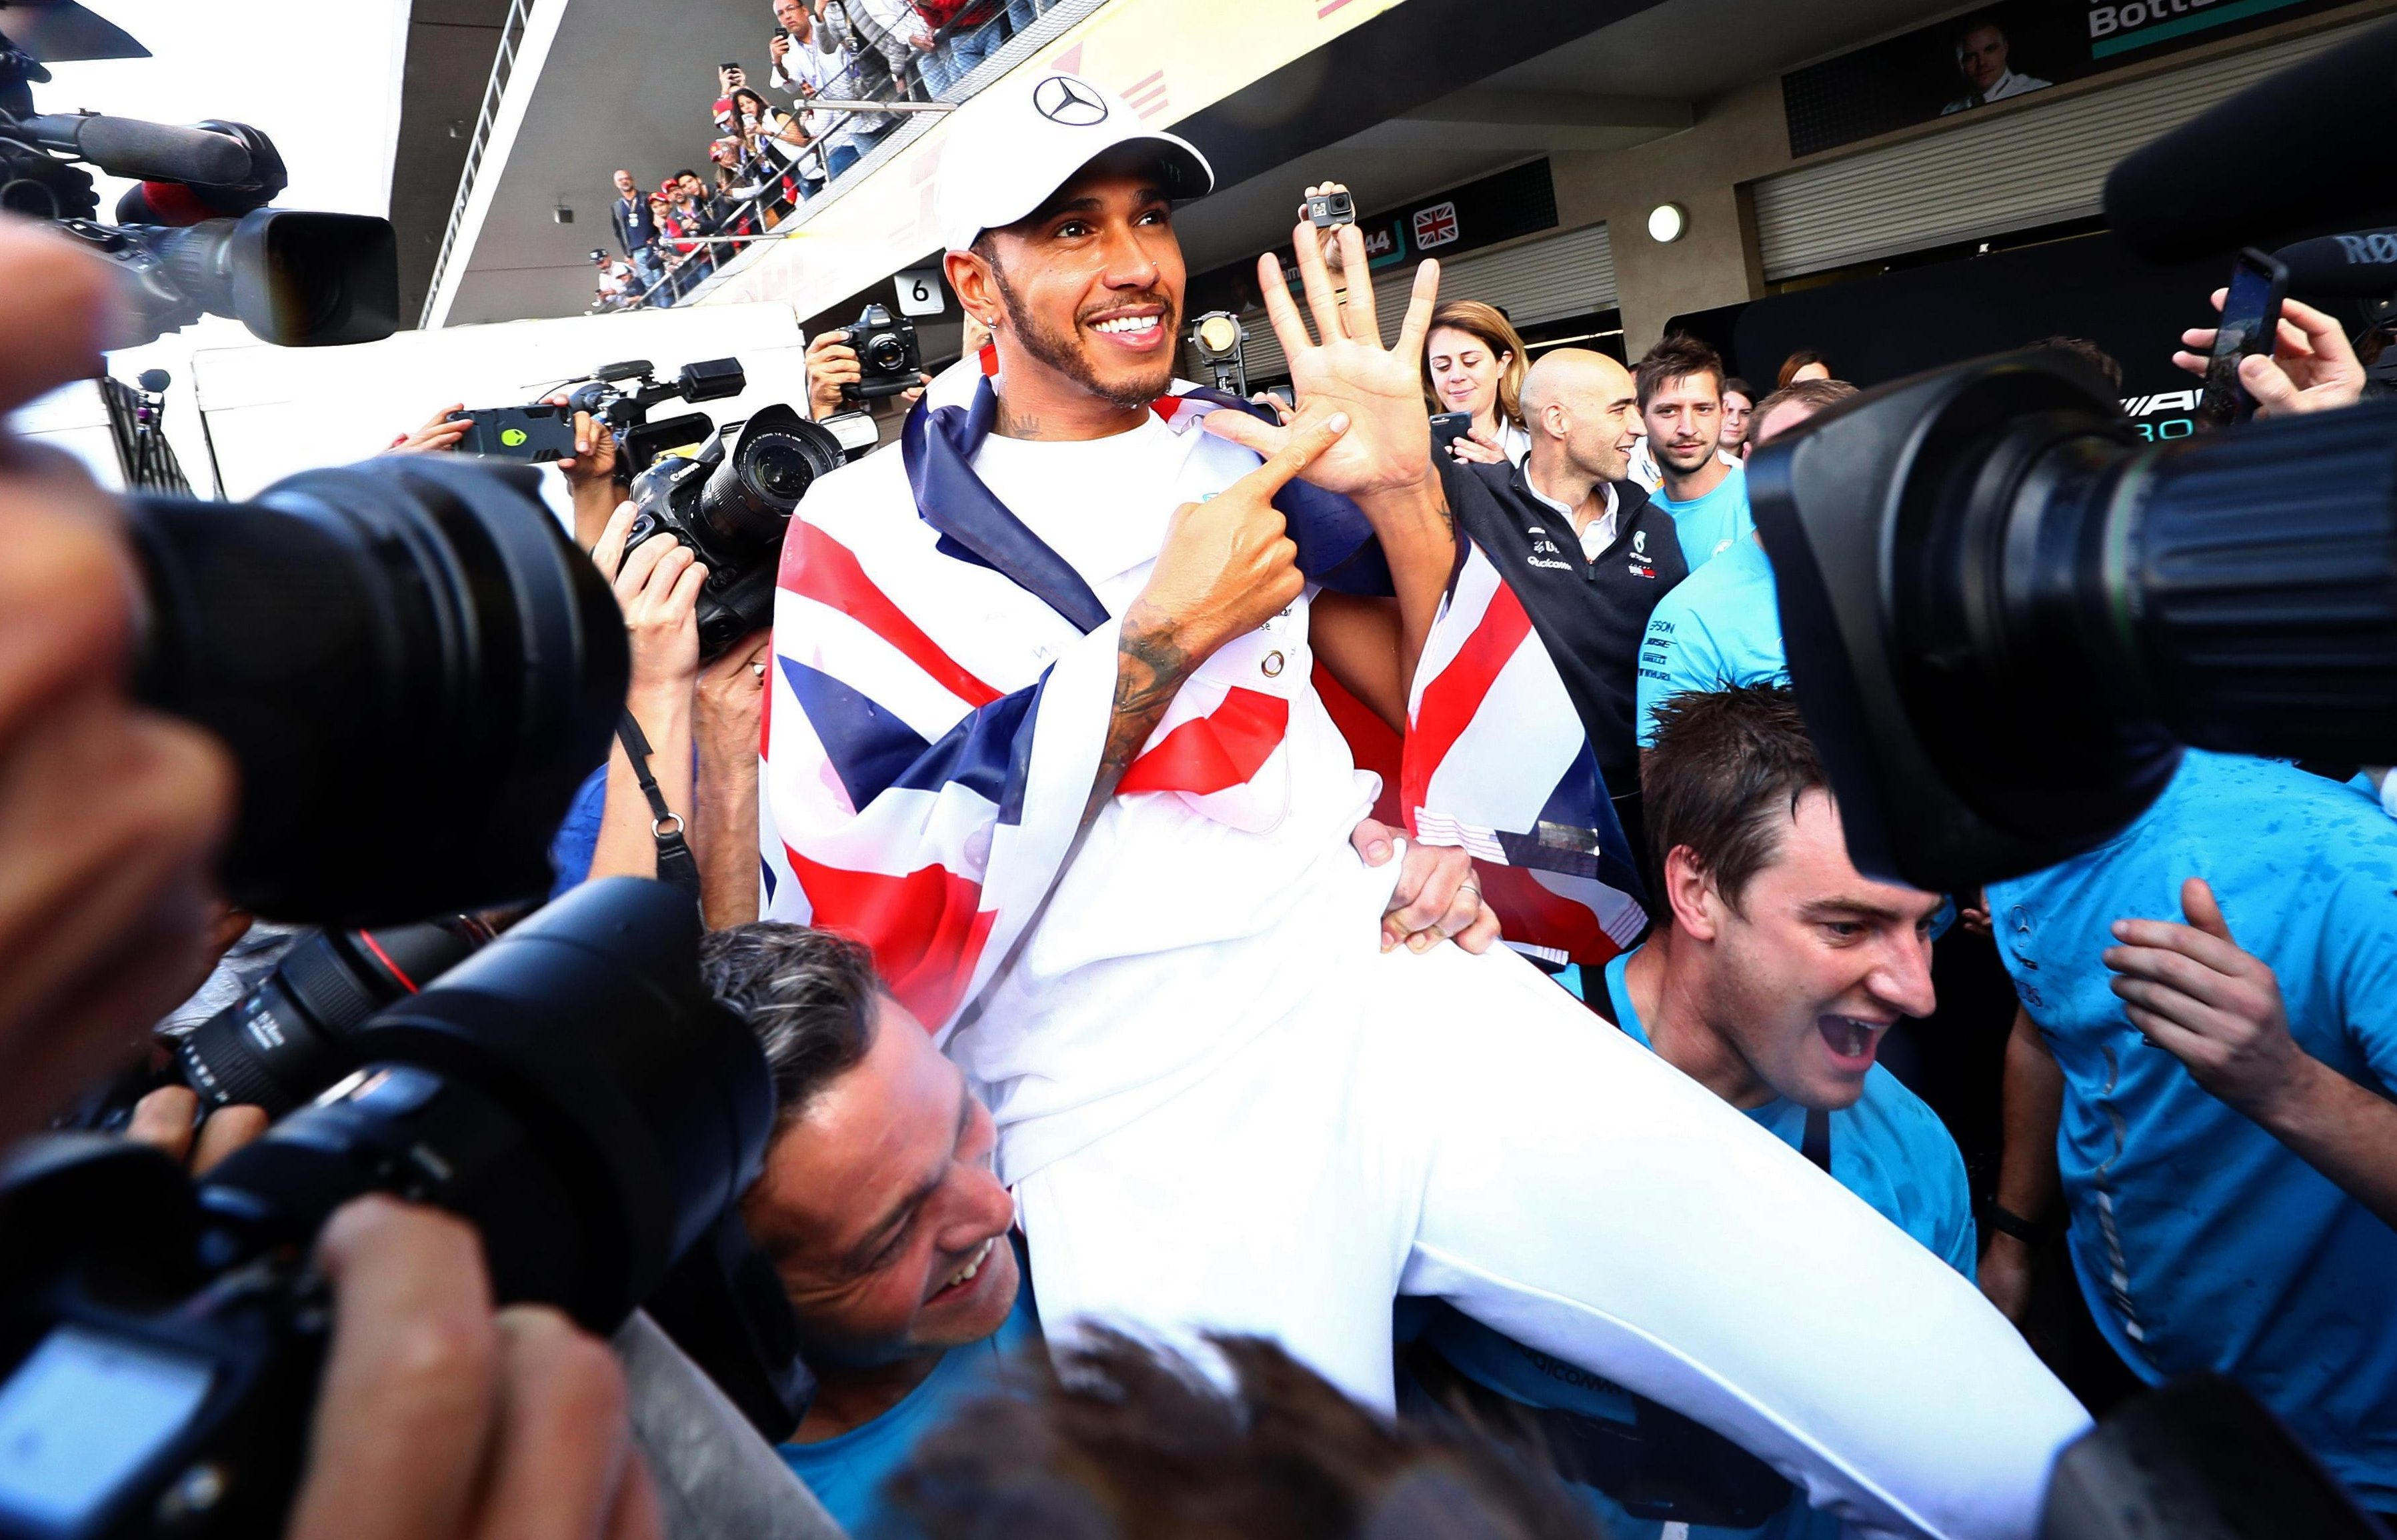 Lewis Hamilton won his fifth world title in Mexico, equalling Juan Manuel Fangio's record